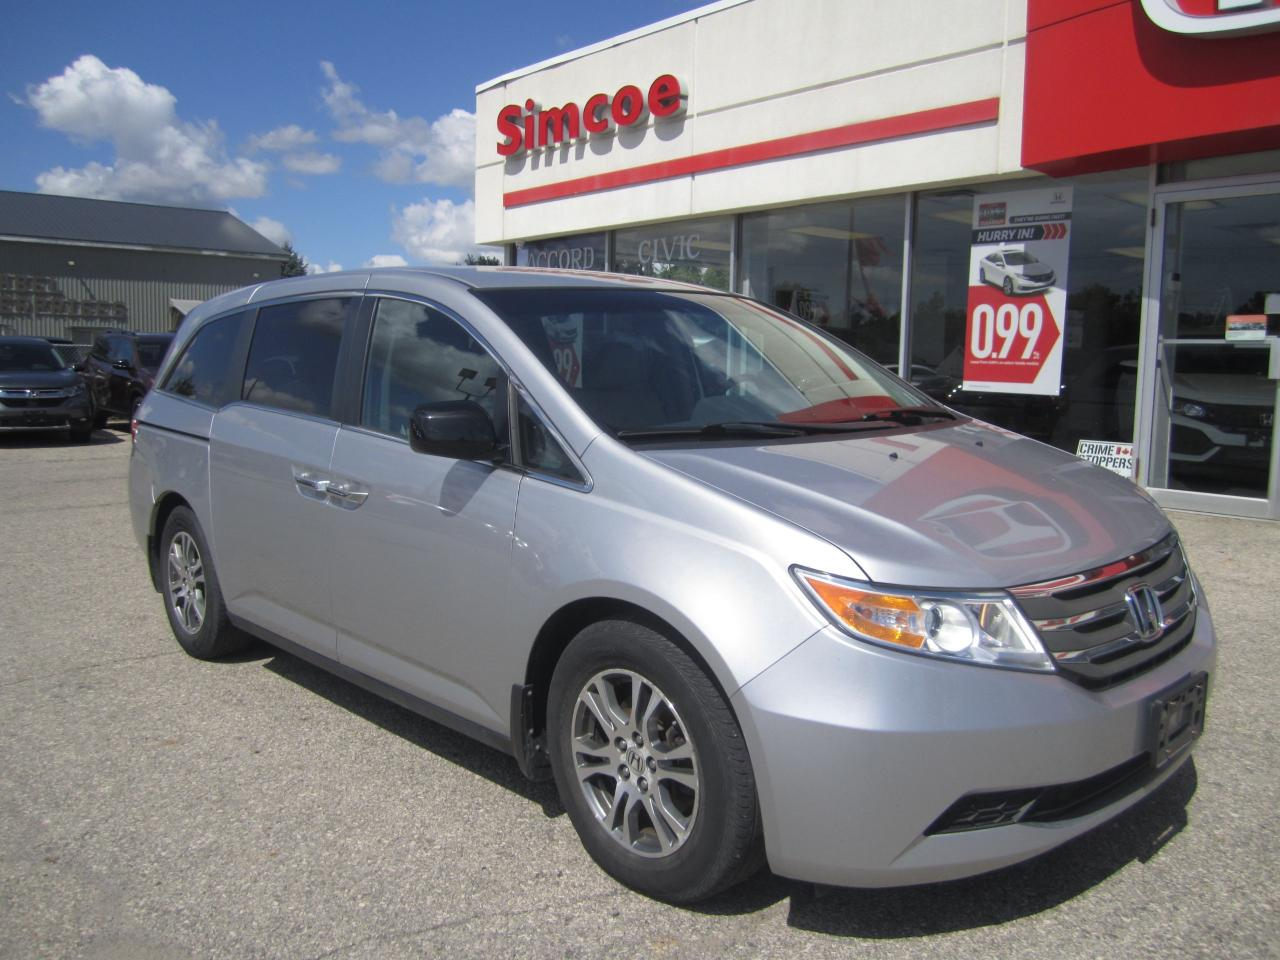 Used 2013 Honda Odyssey EX for Sale in Simcoe, Ontario | Carpages ca